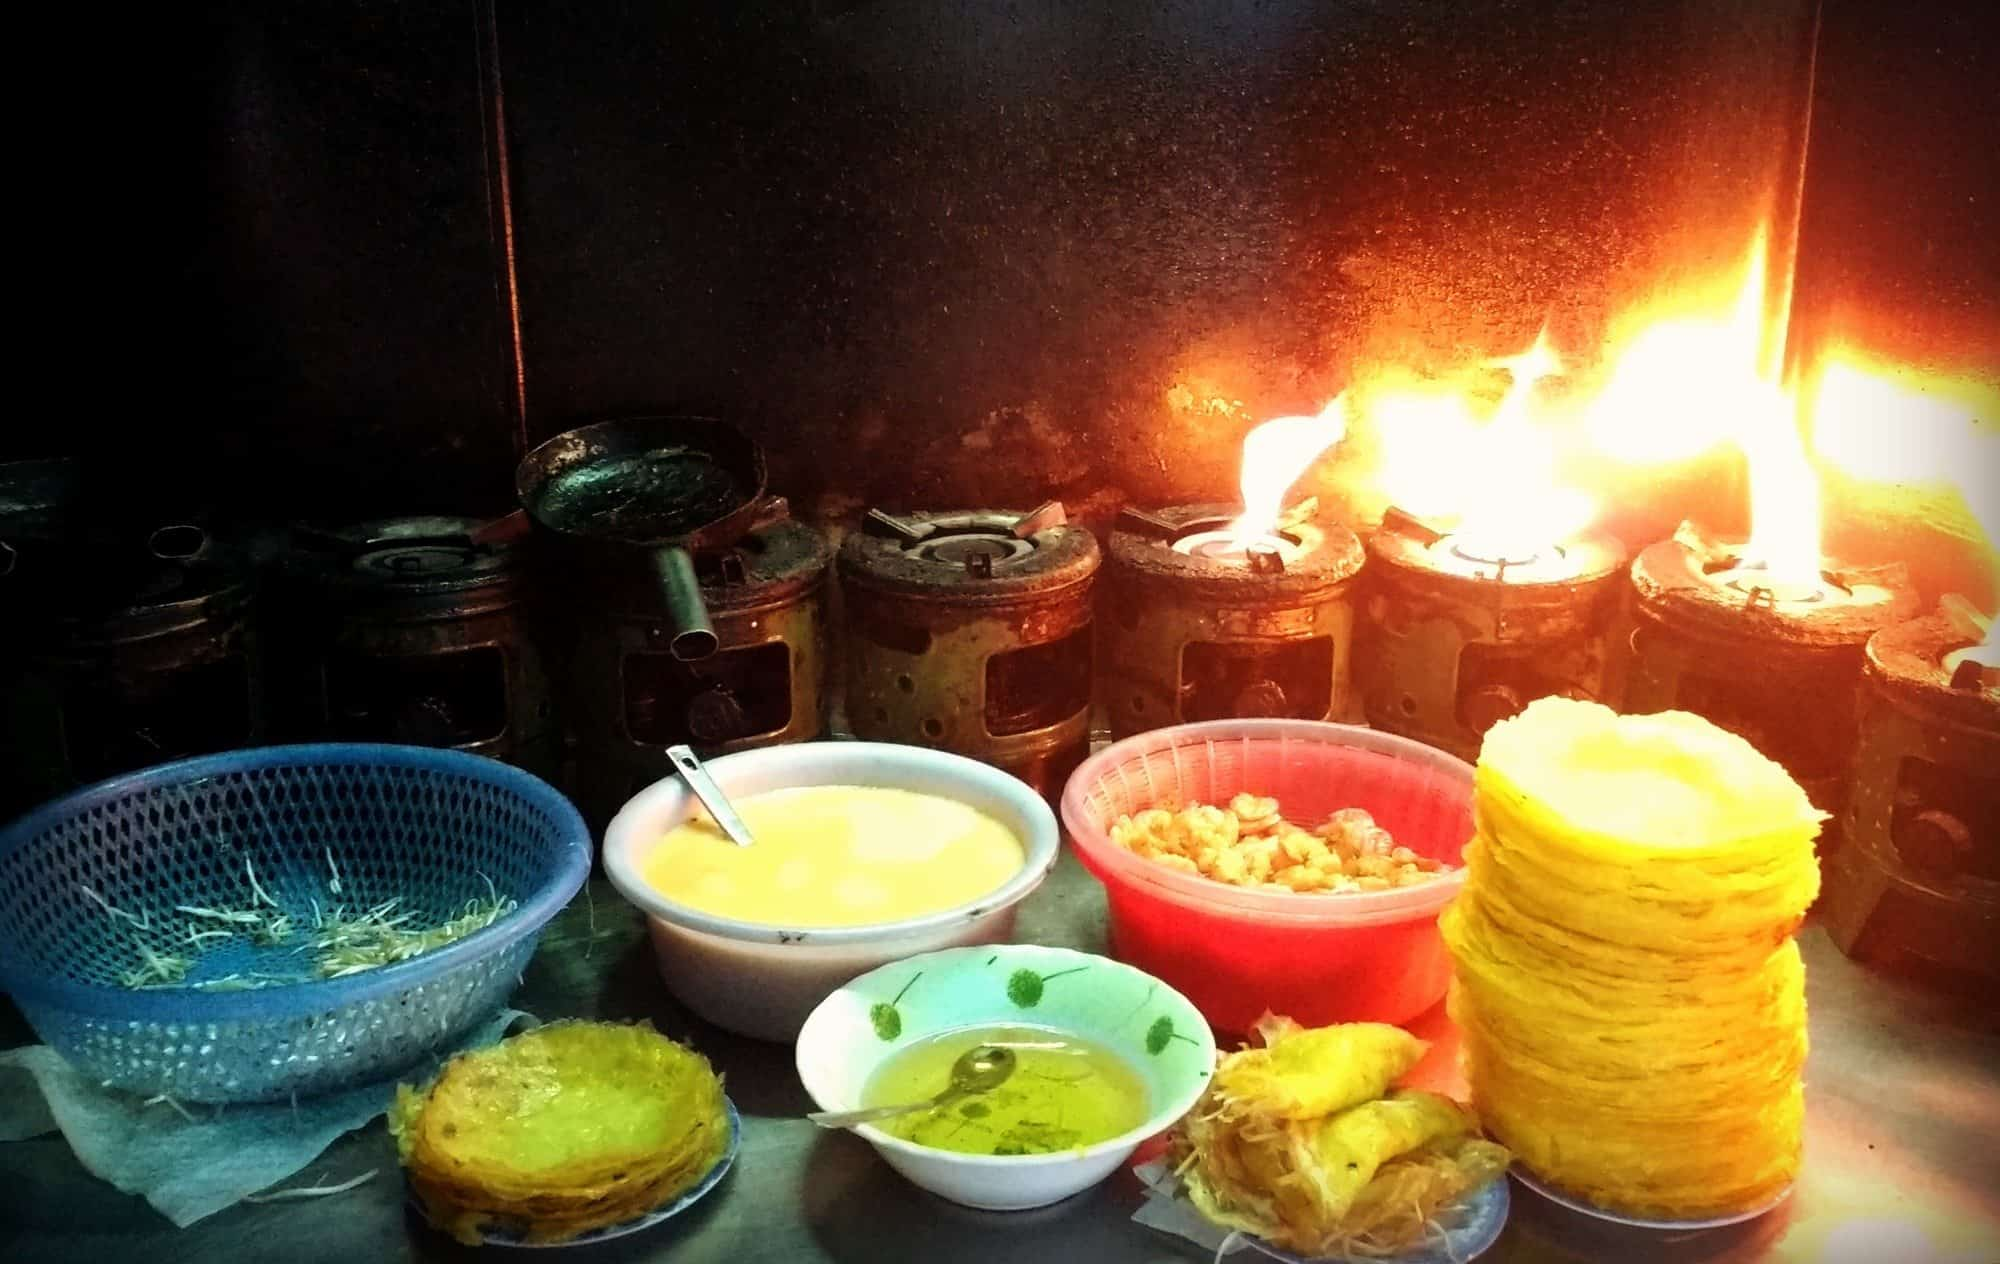 Banh Xeo, Eating and Cooking Vietnam's Crispy Pancakes